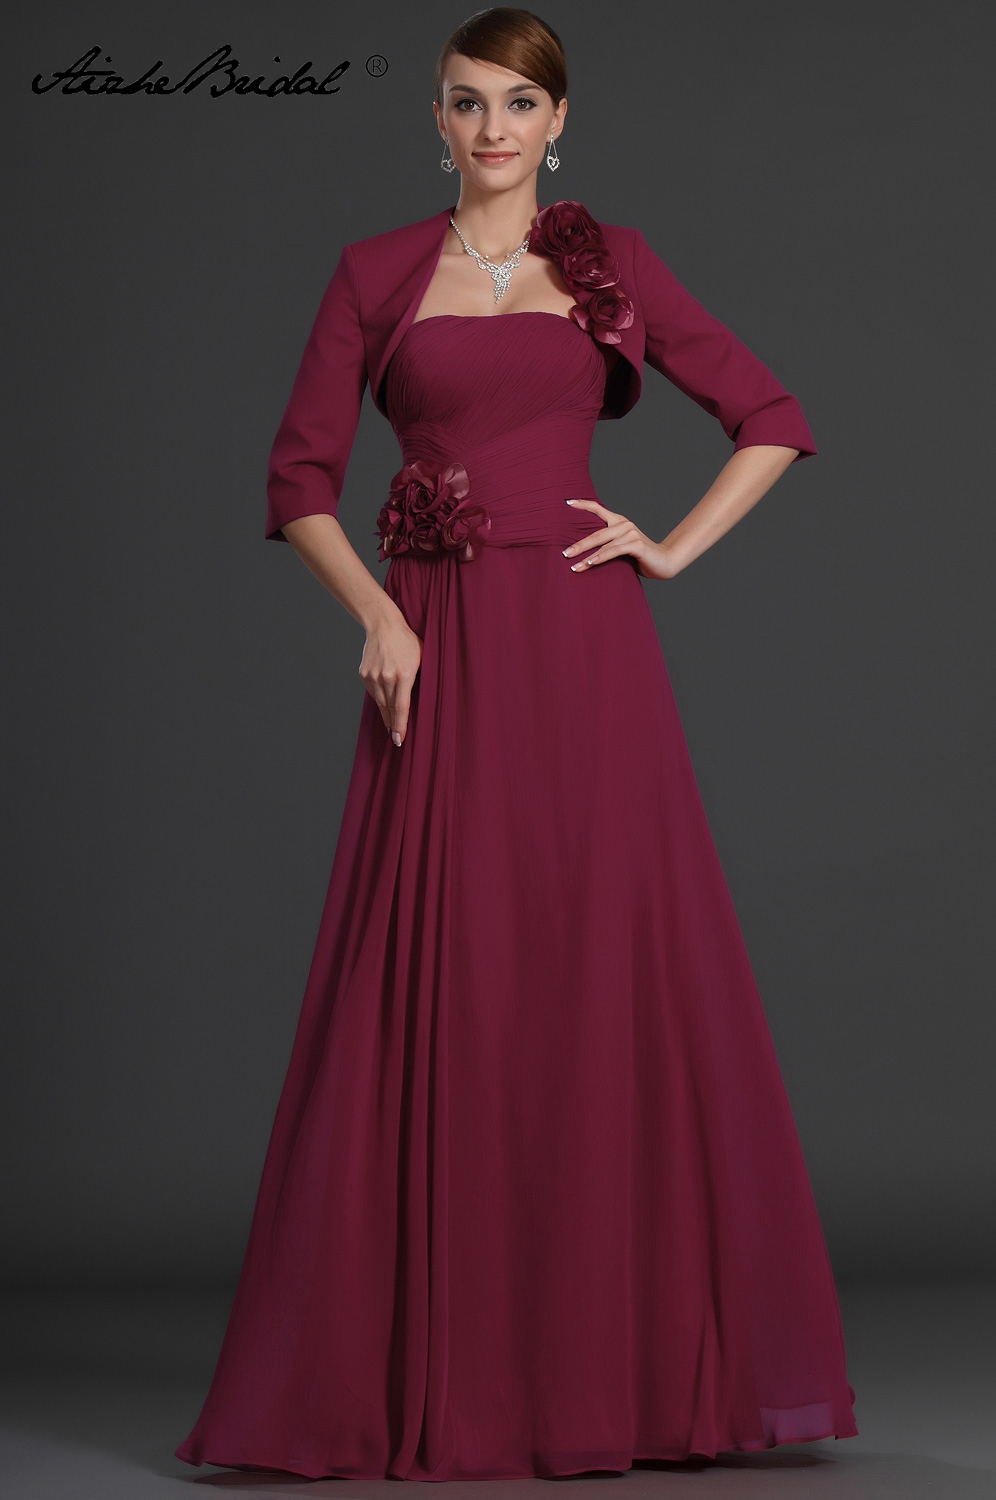 Mother Of The Groom Dresses Elegant A Line Strapless Mother Of The Bride Dress With Jacket Flowers